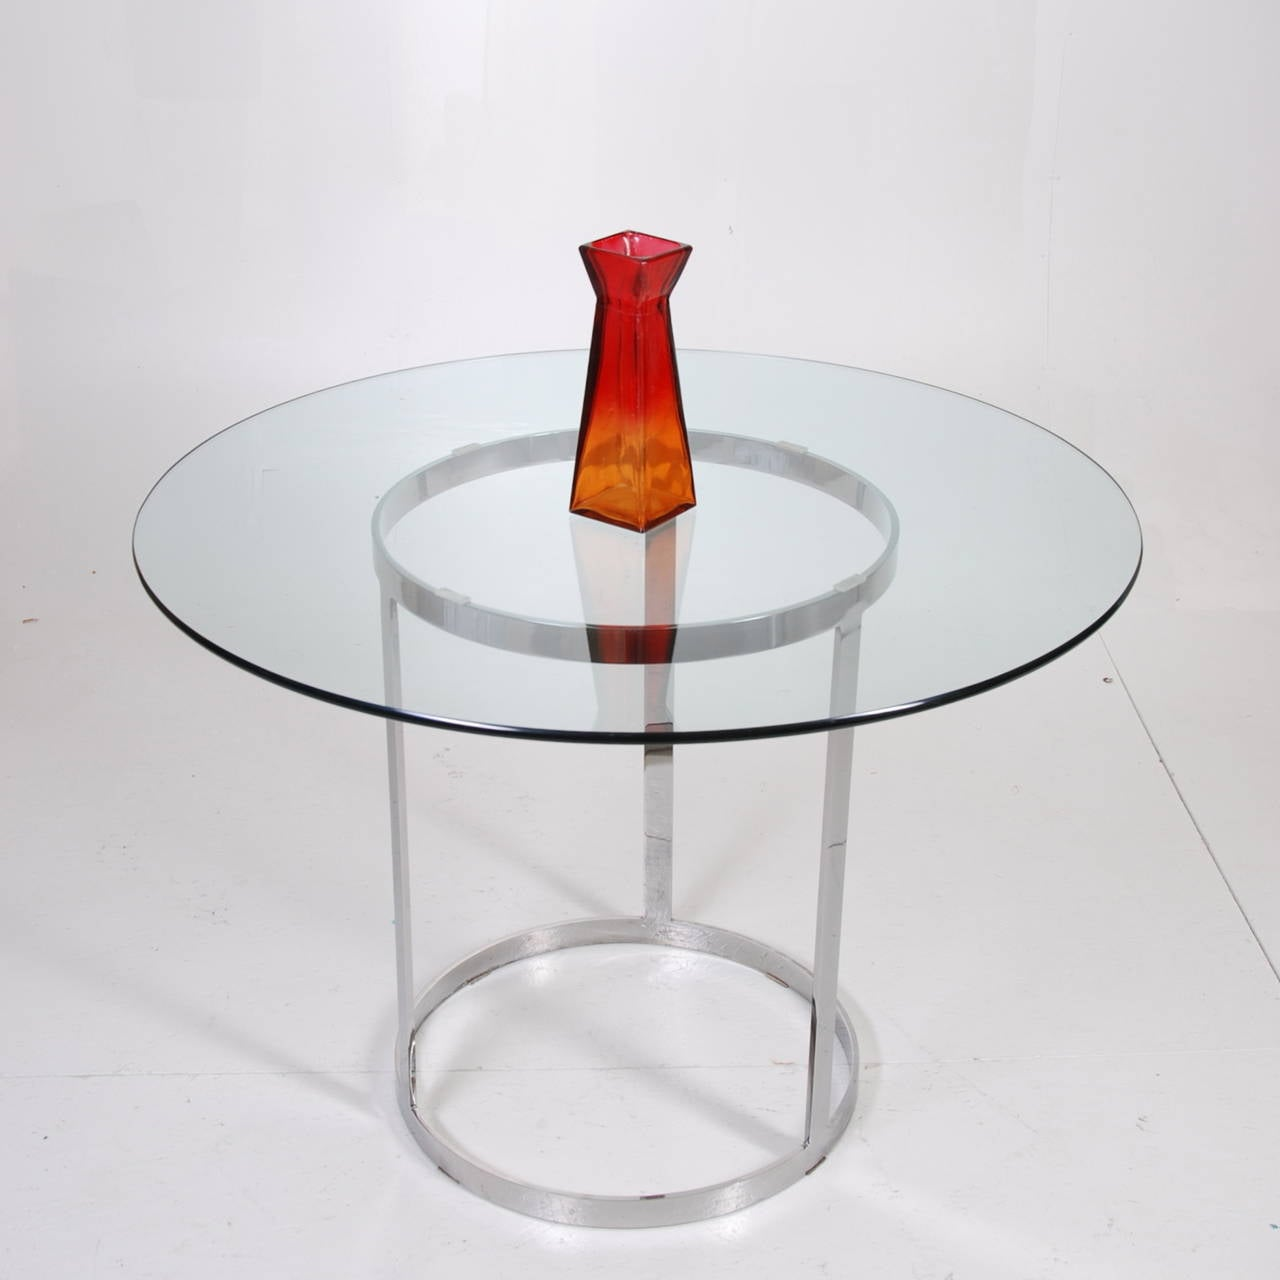 Milo Baughman Round Glass And Chrome Dining Table At 1stdibs